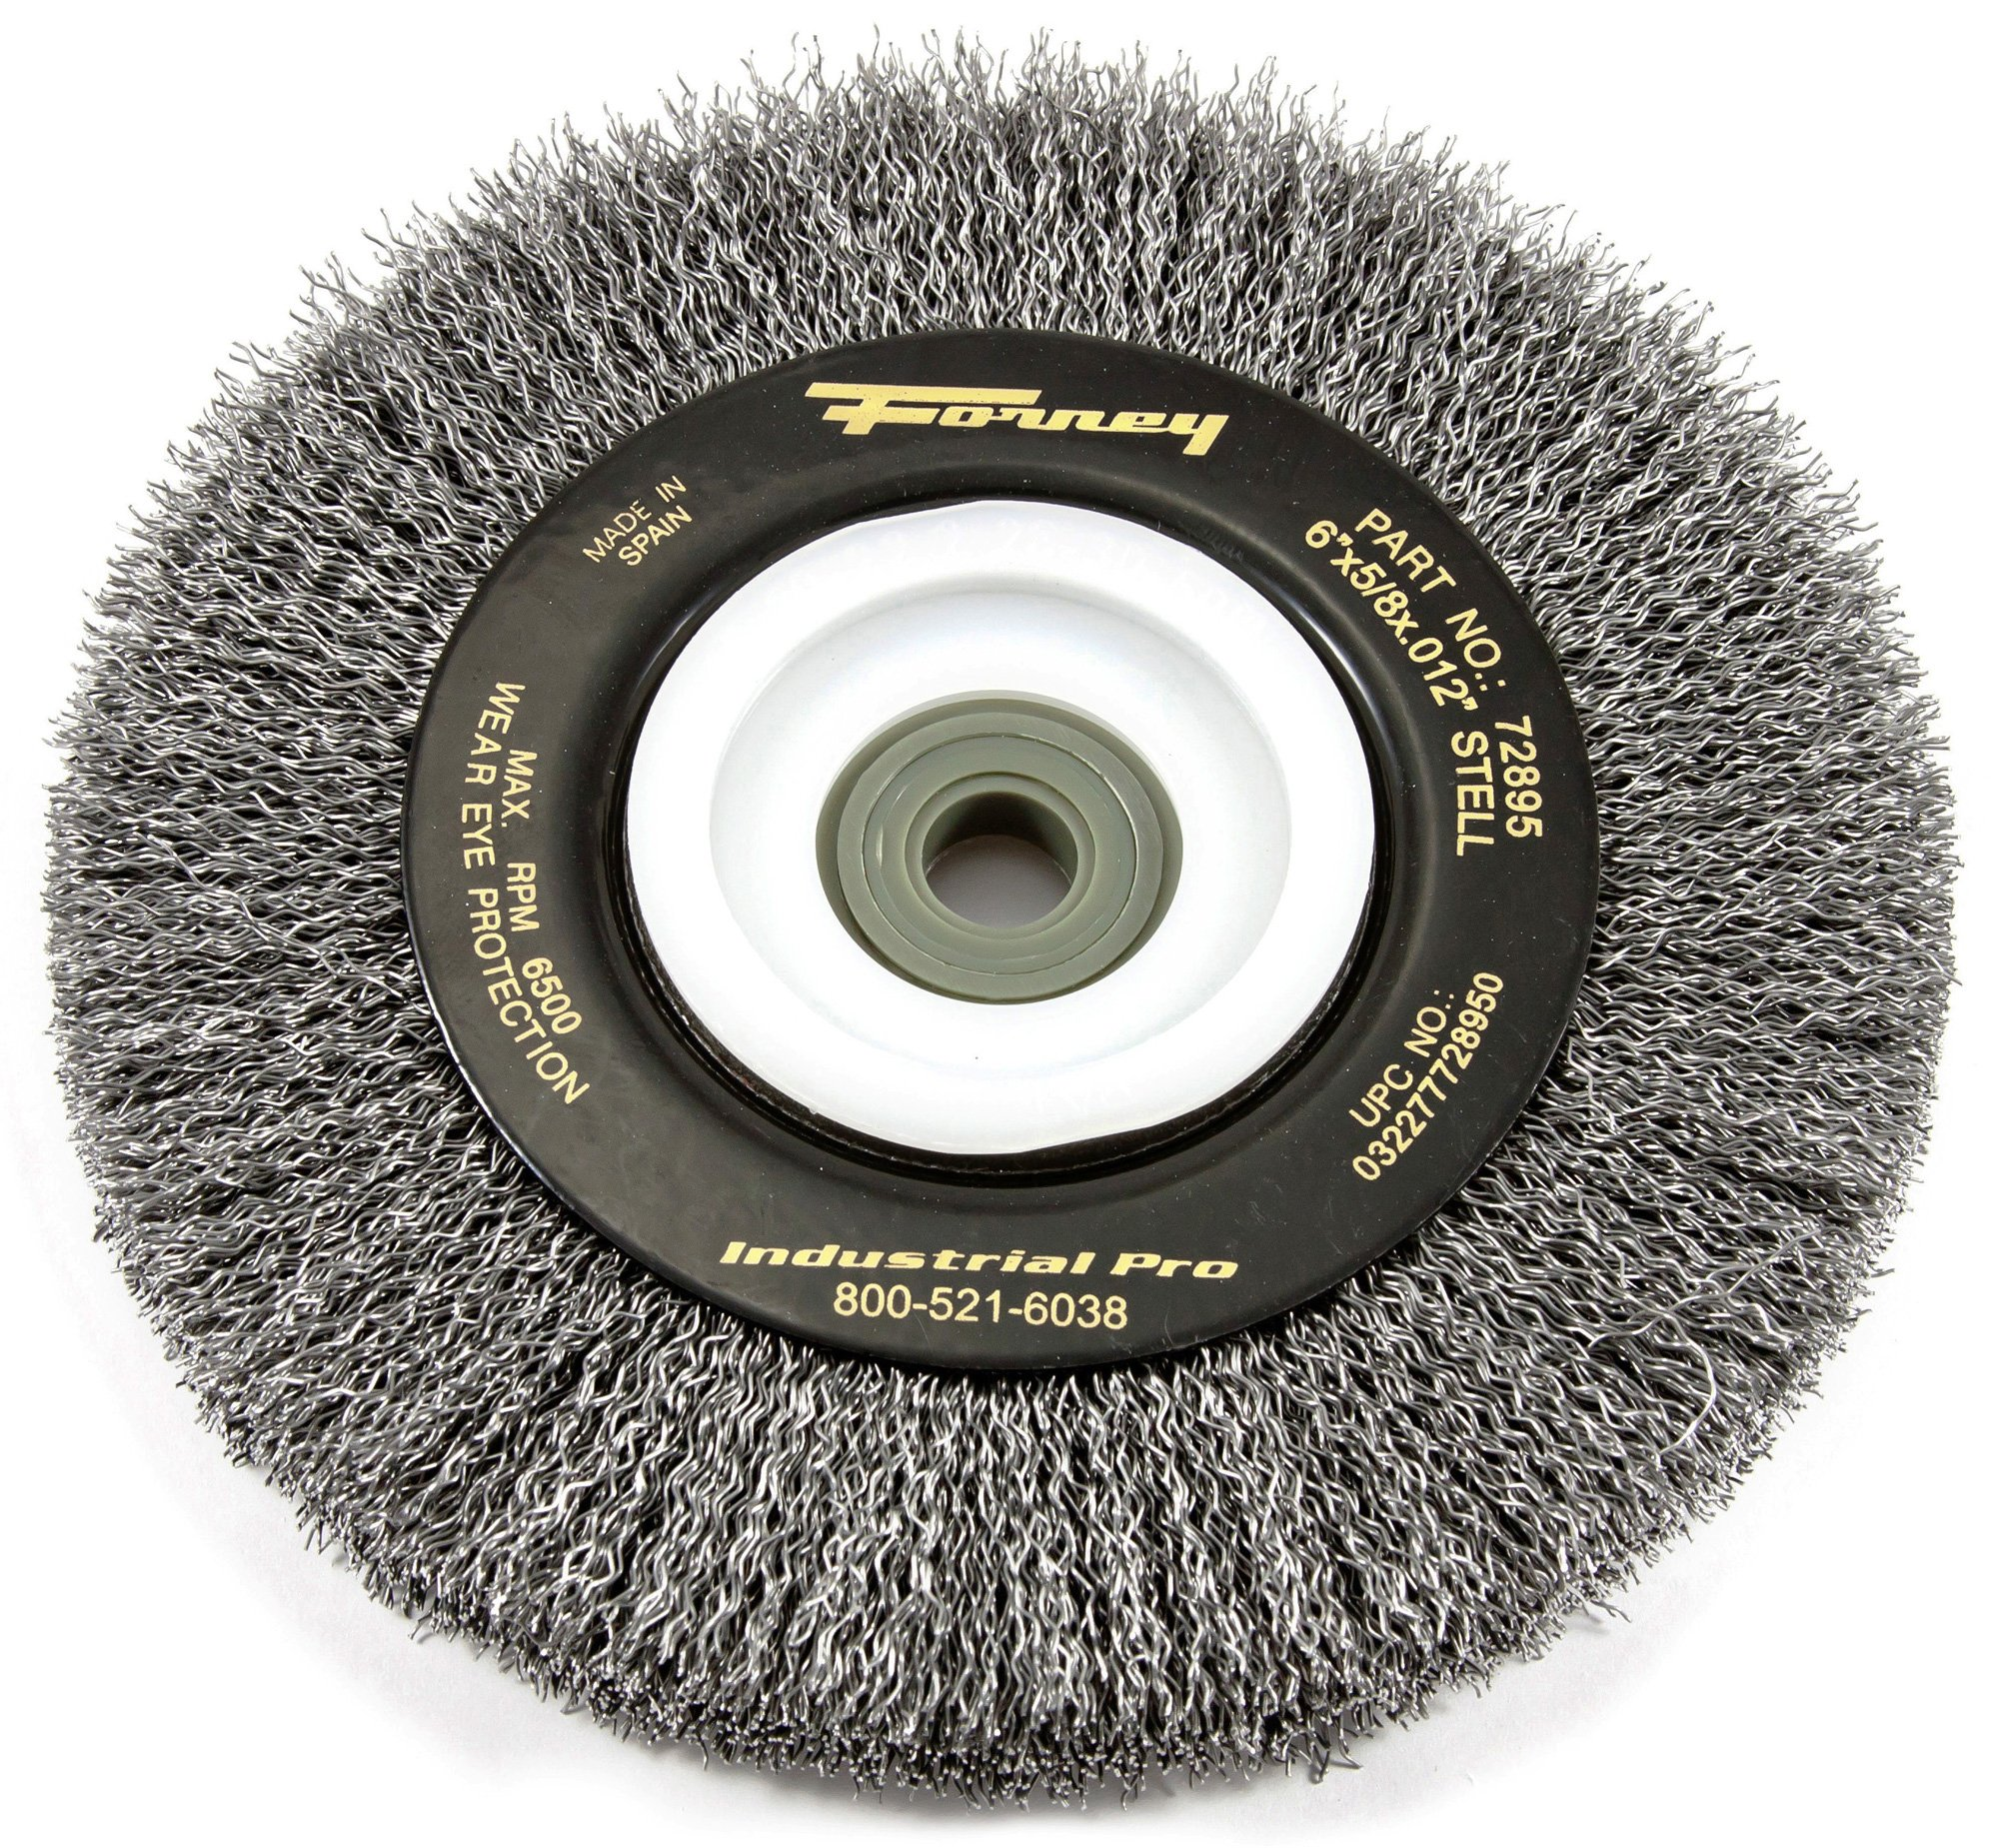 Forney 72895 Wire Bench Wheel Brush, Industrial Pro Crimped with 1/2-Inch Through 2-Inch Multi Arbor, 6-Inch-by-.012-Inch